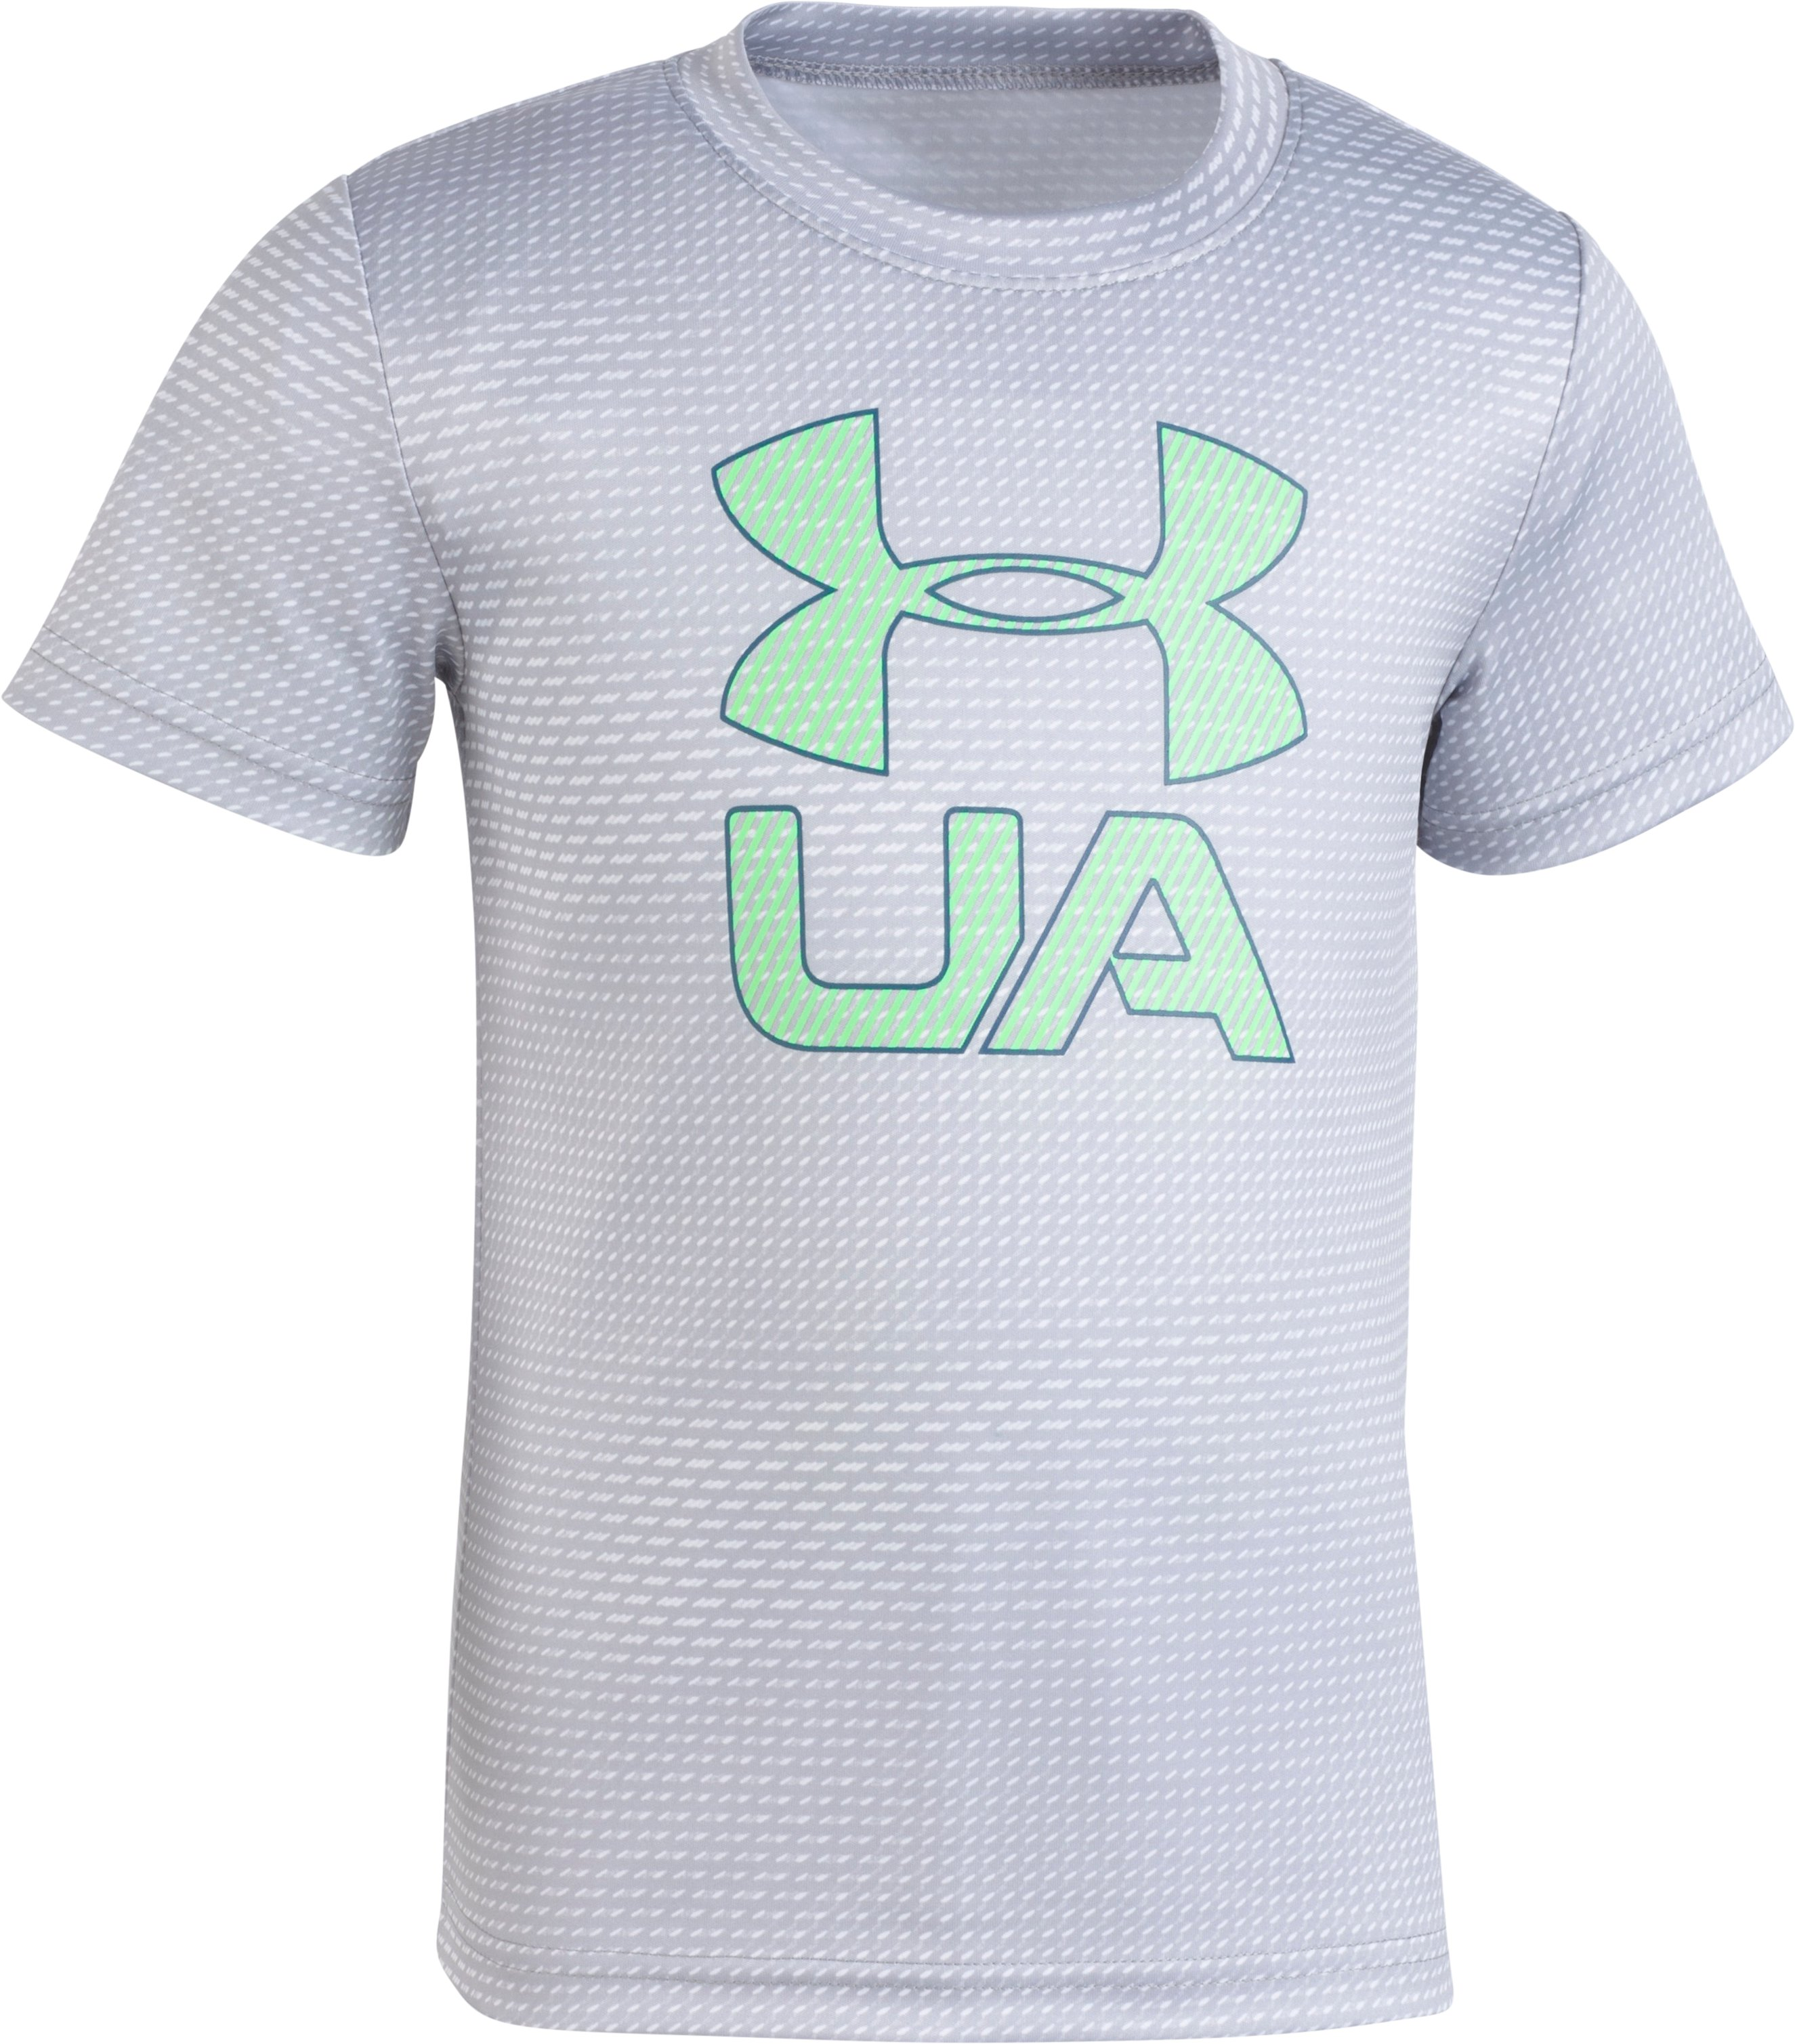 Boys' Pre-School UA Sync T-Shirt, White, zoomed